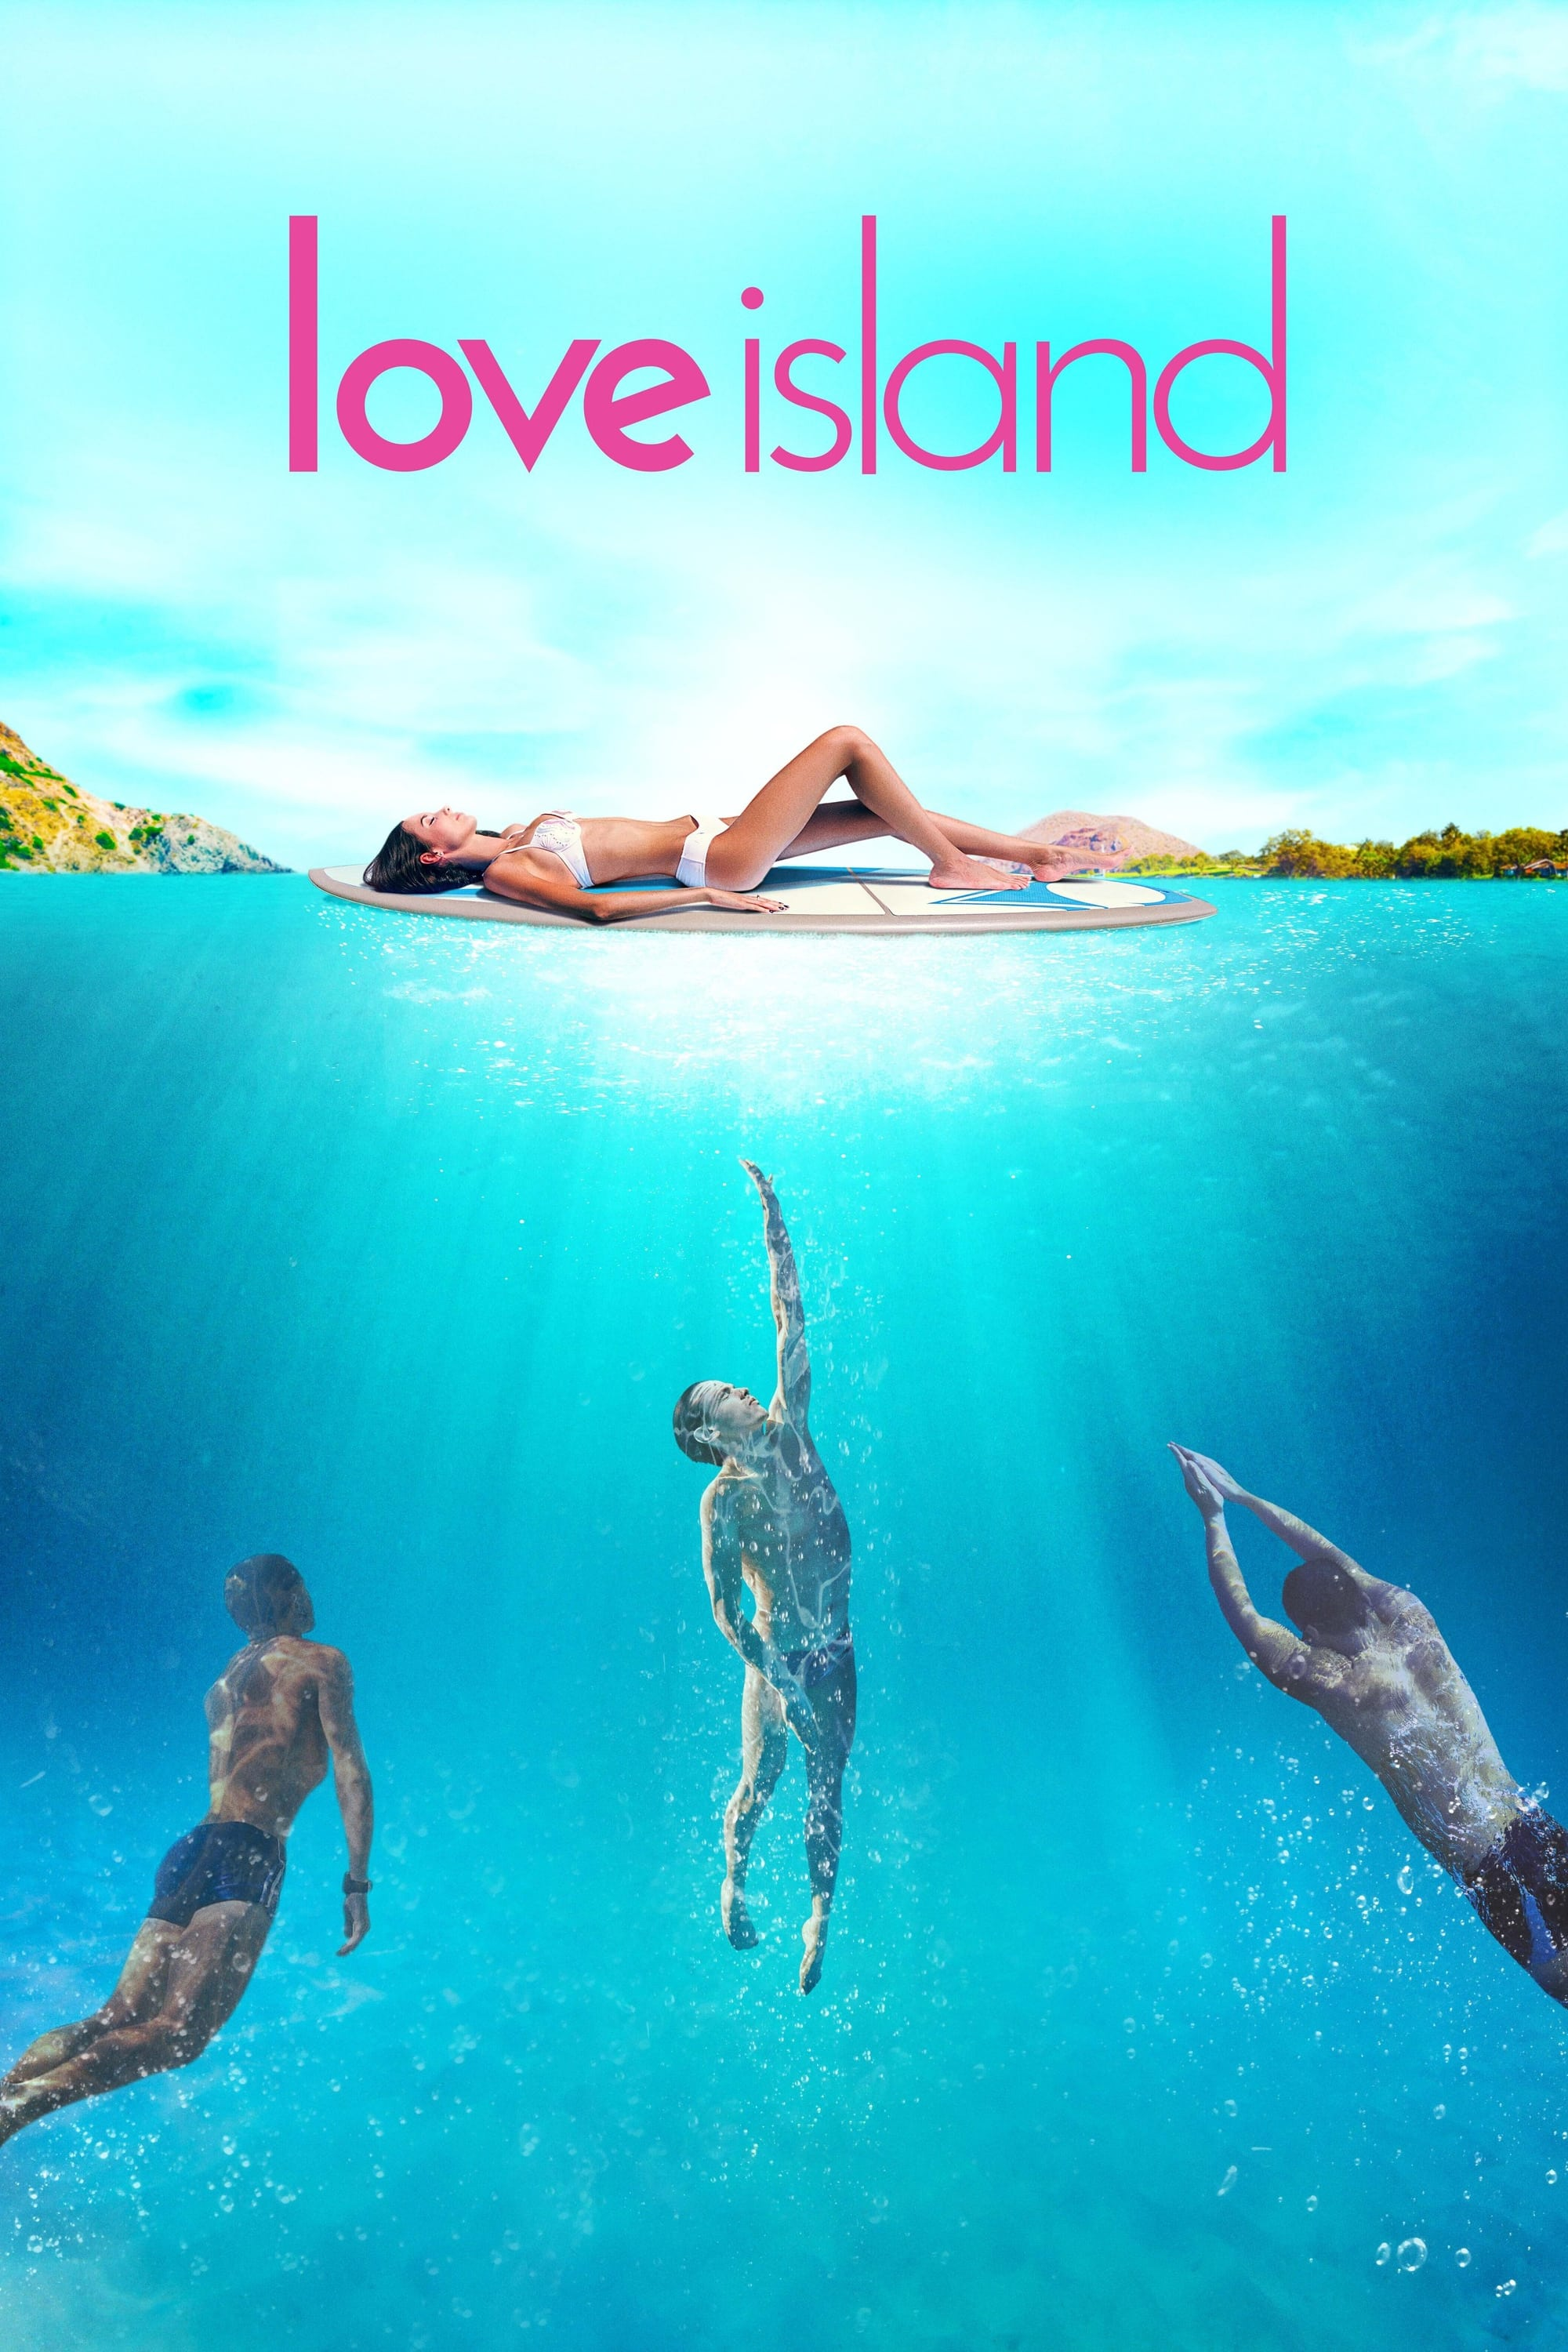 Love Island TV Shows About Island